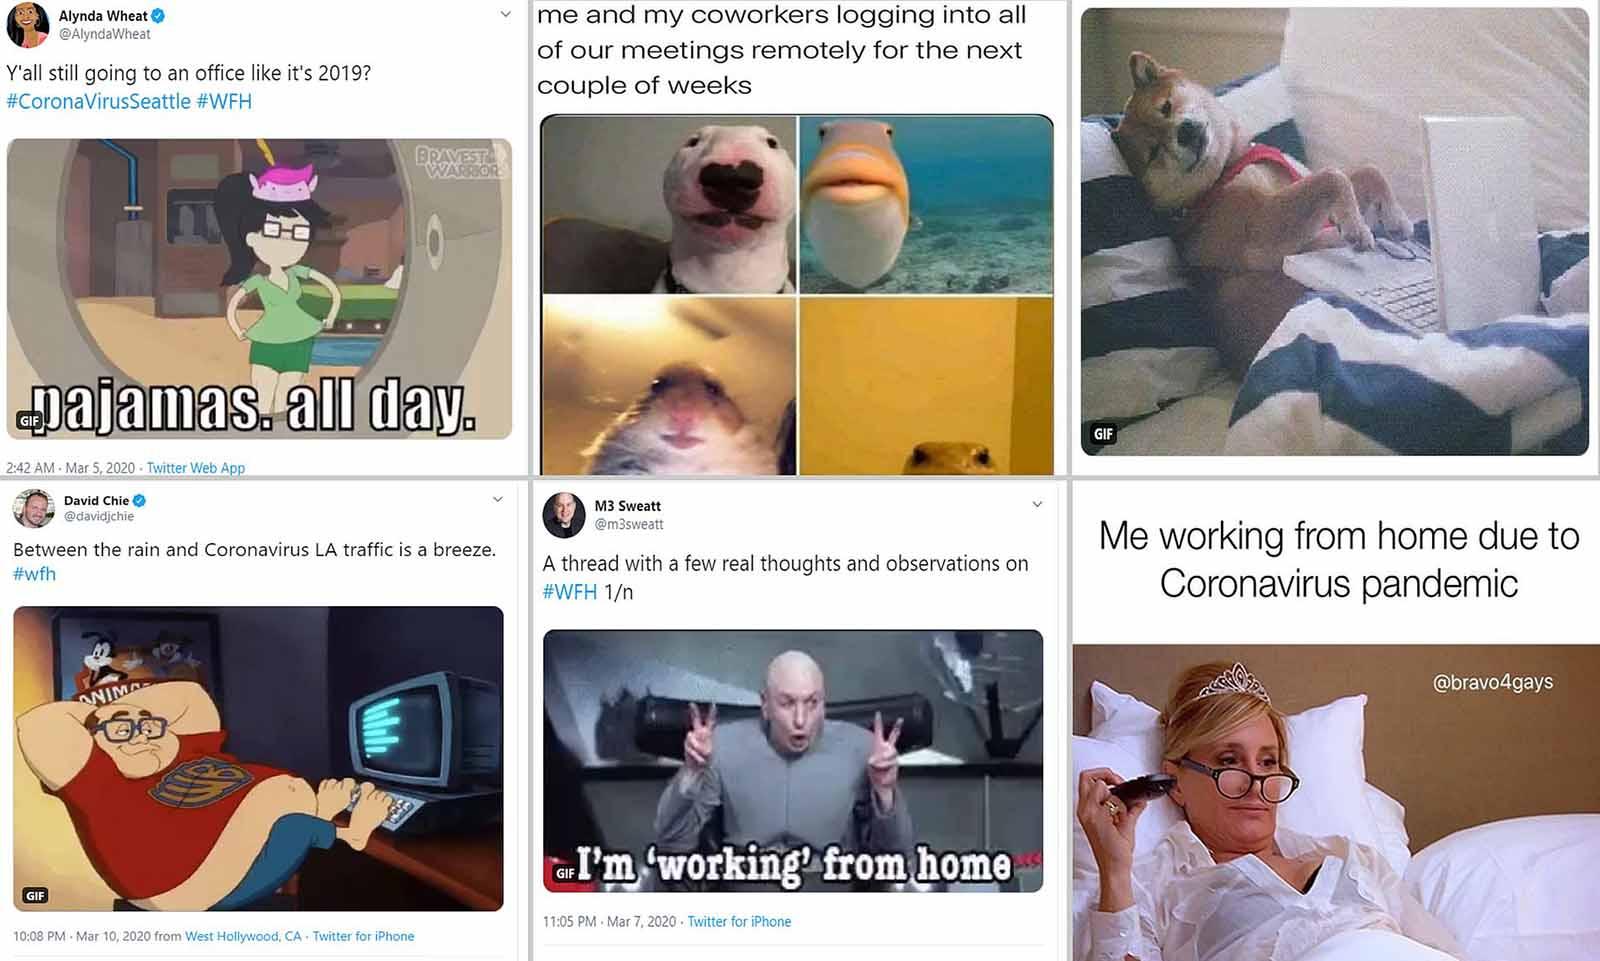 With nothing big happening in anyone's lives right now, you need a little more heat on your Instagram. Why not freshen it up with some memes?